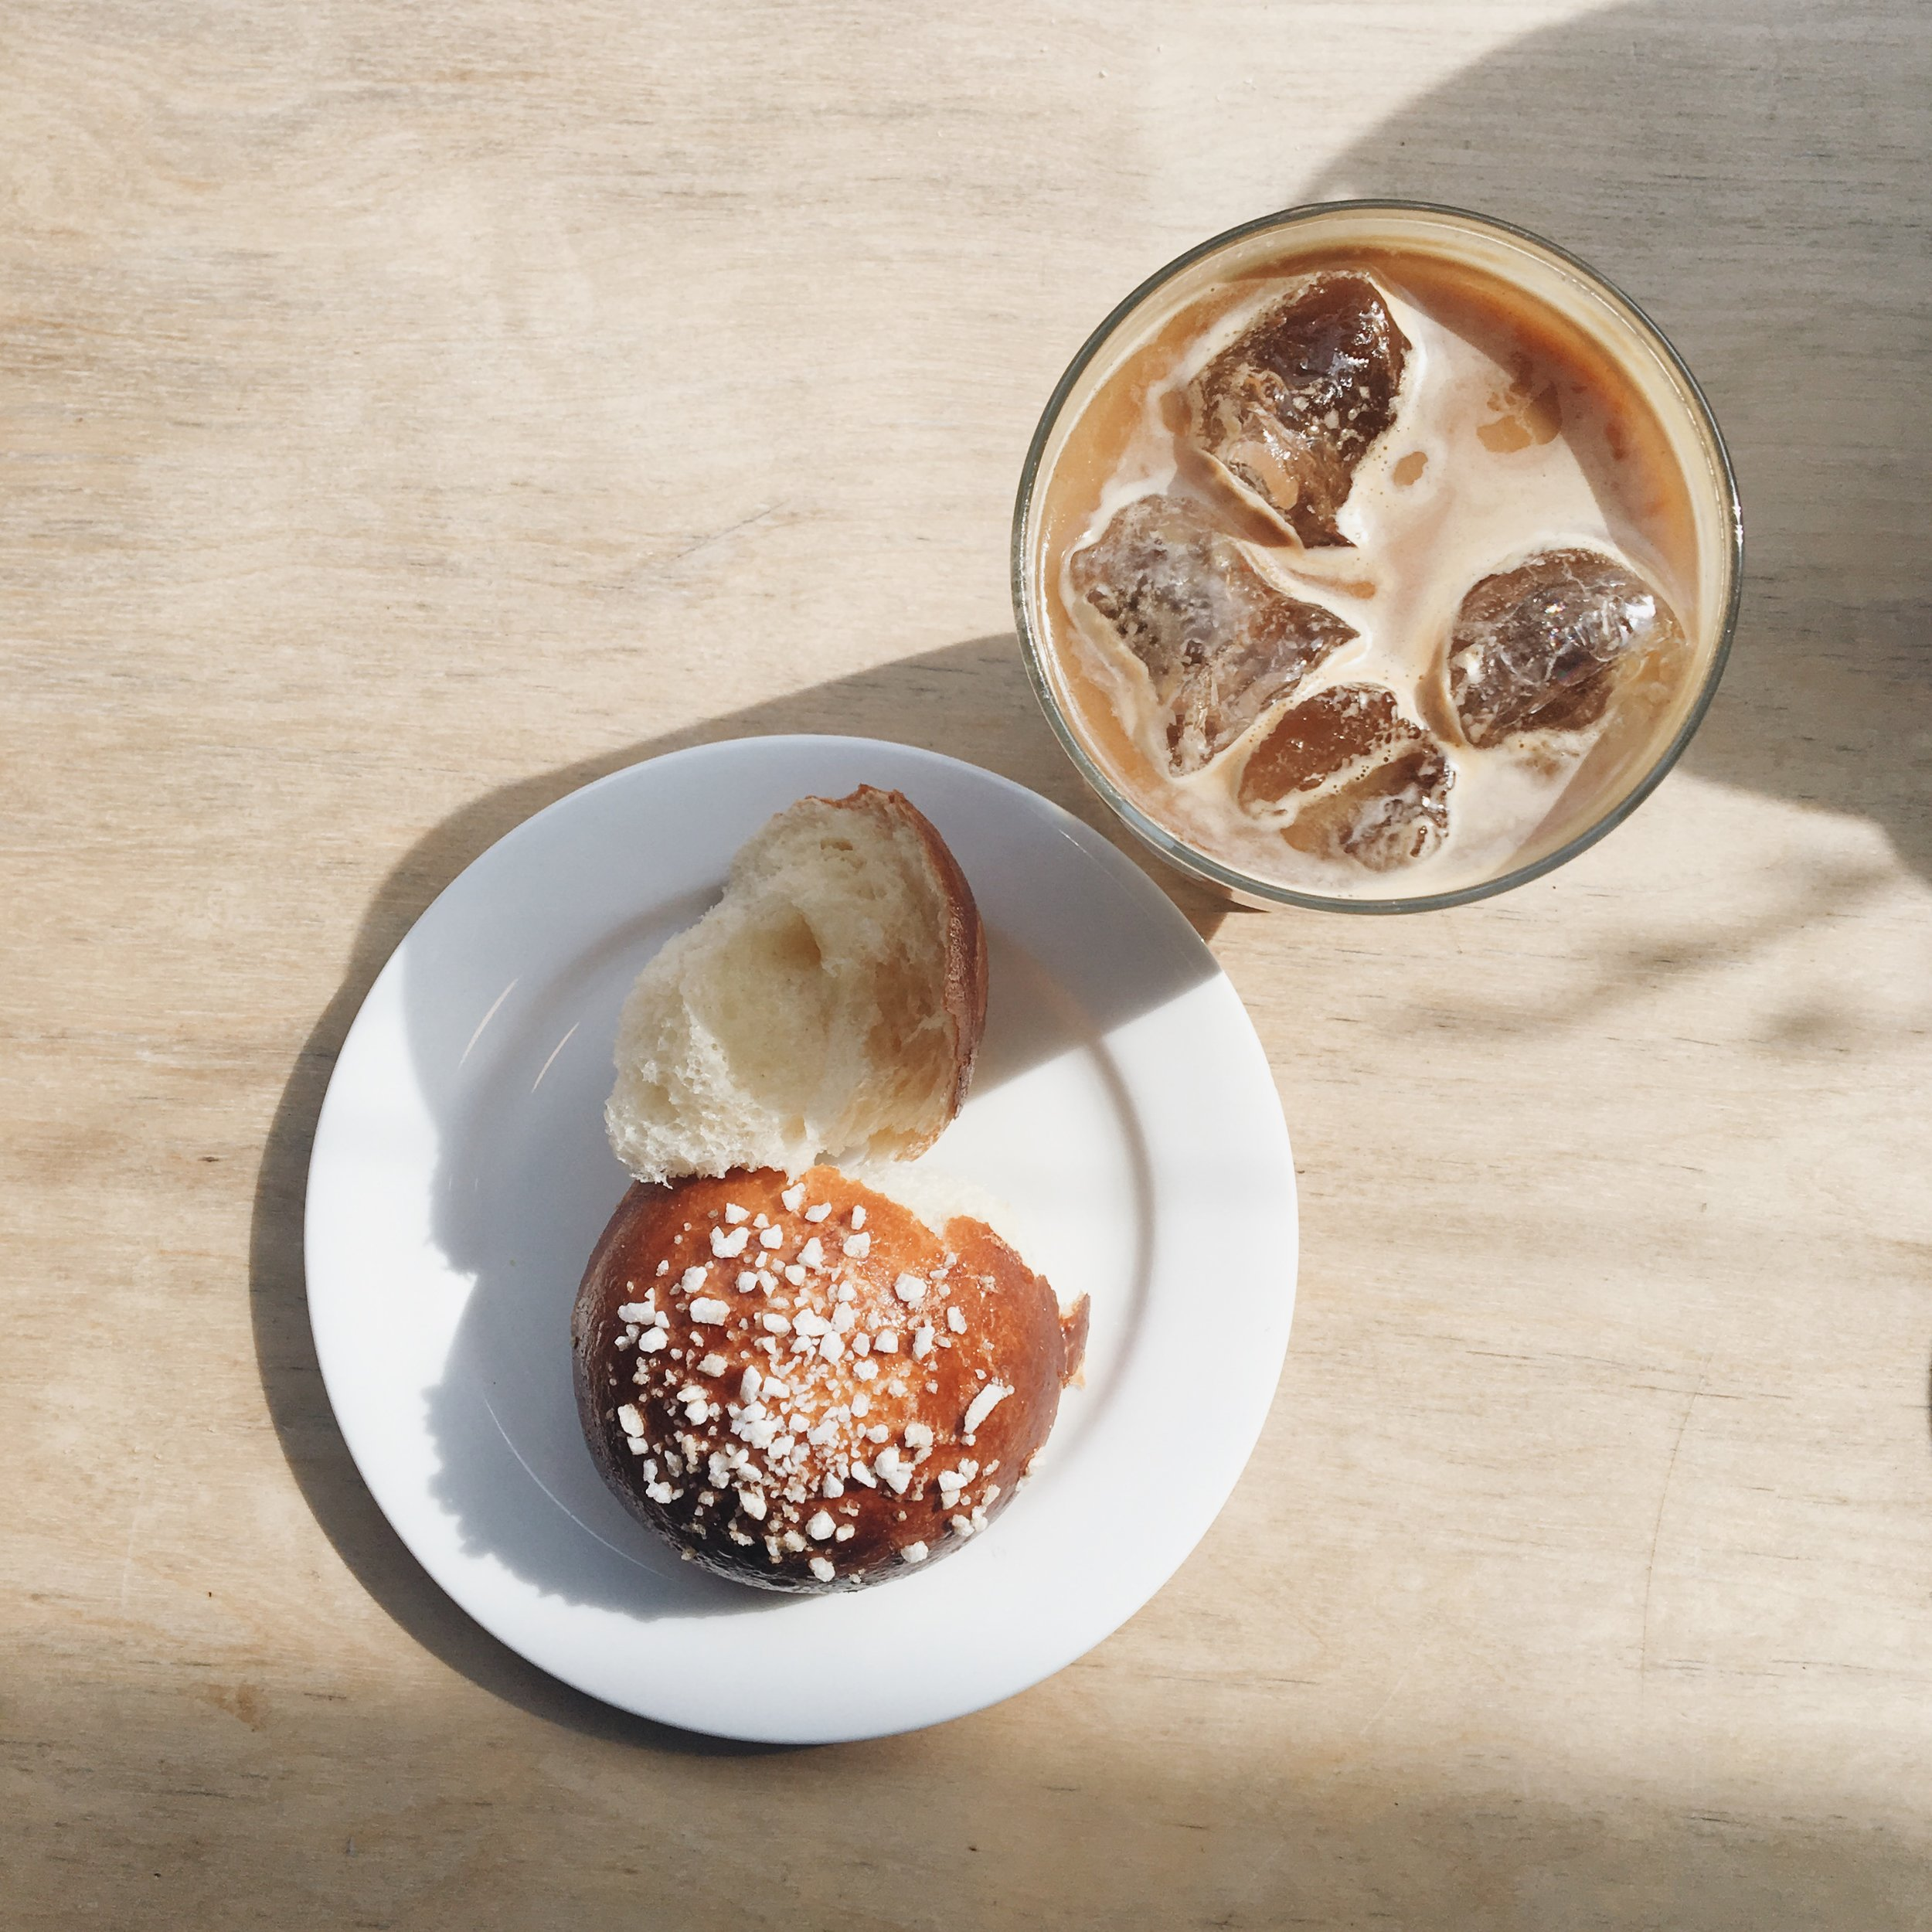 Brickhouse iced coffee and brioche bun. Image: SouthEast15